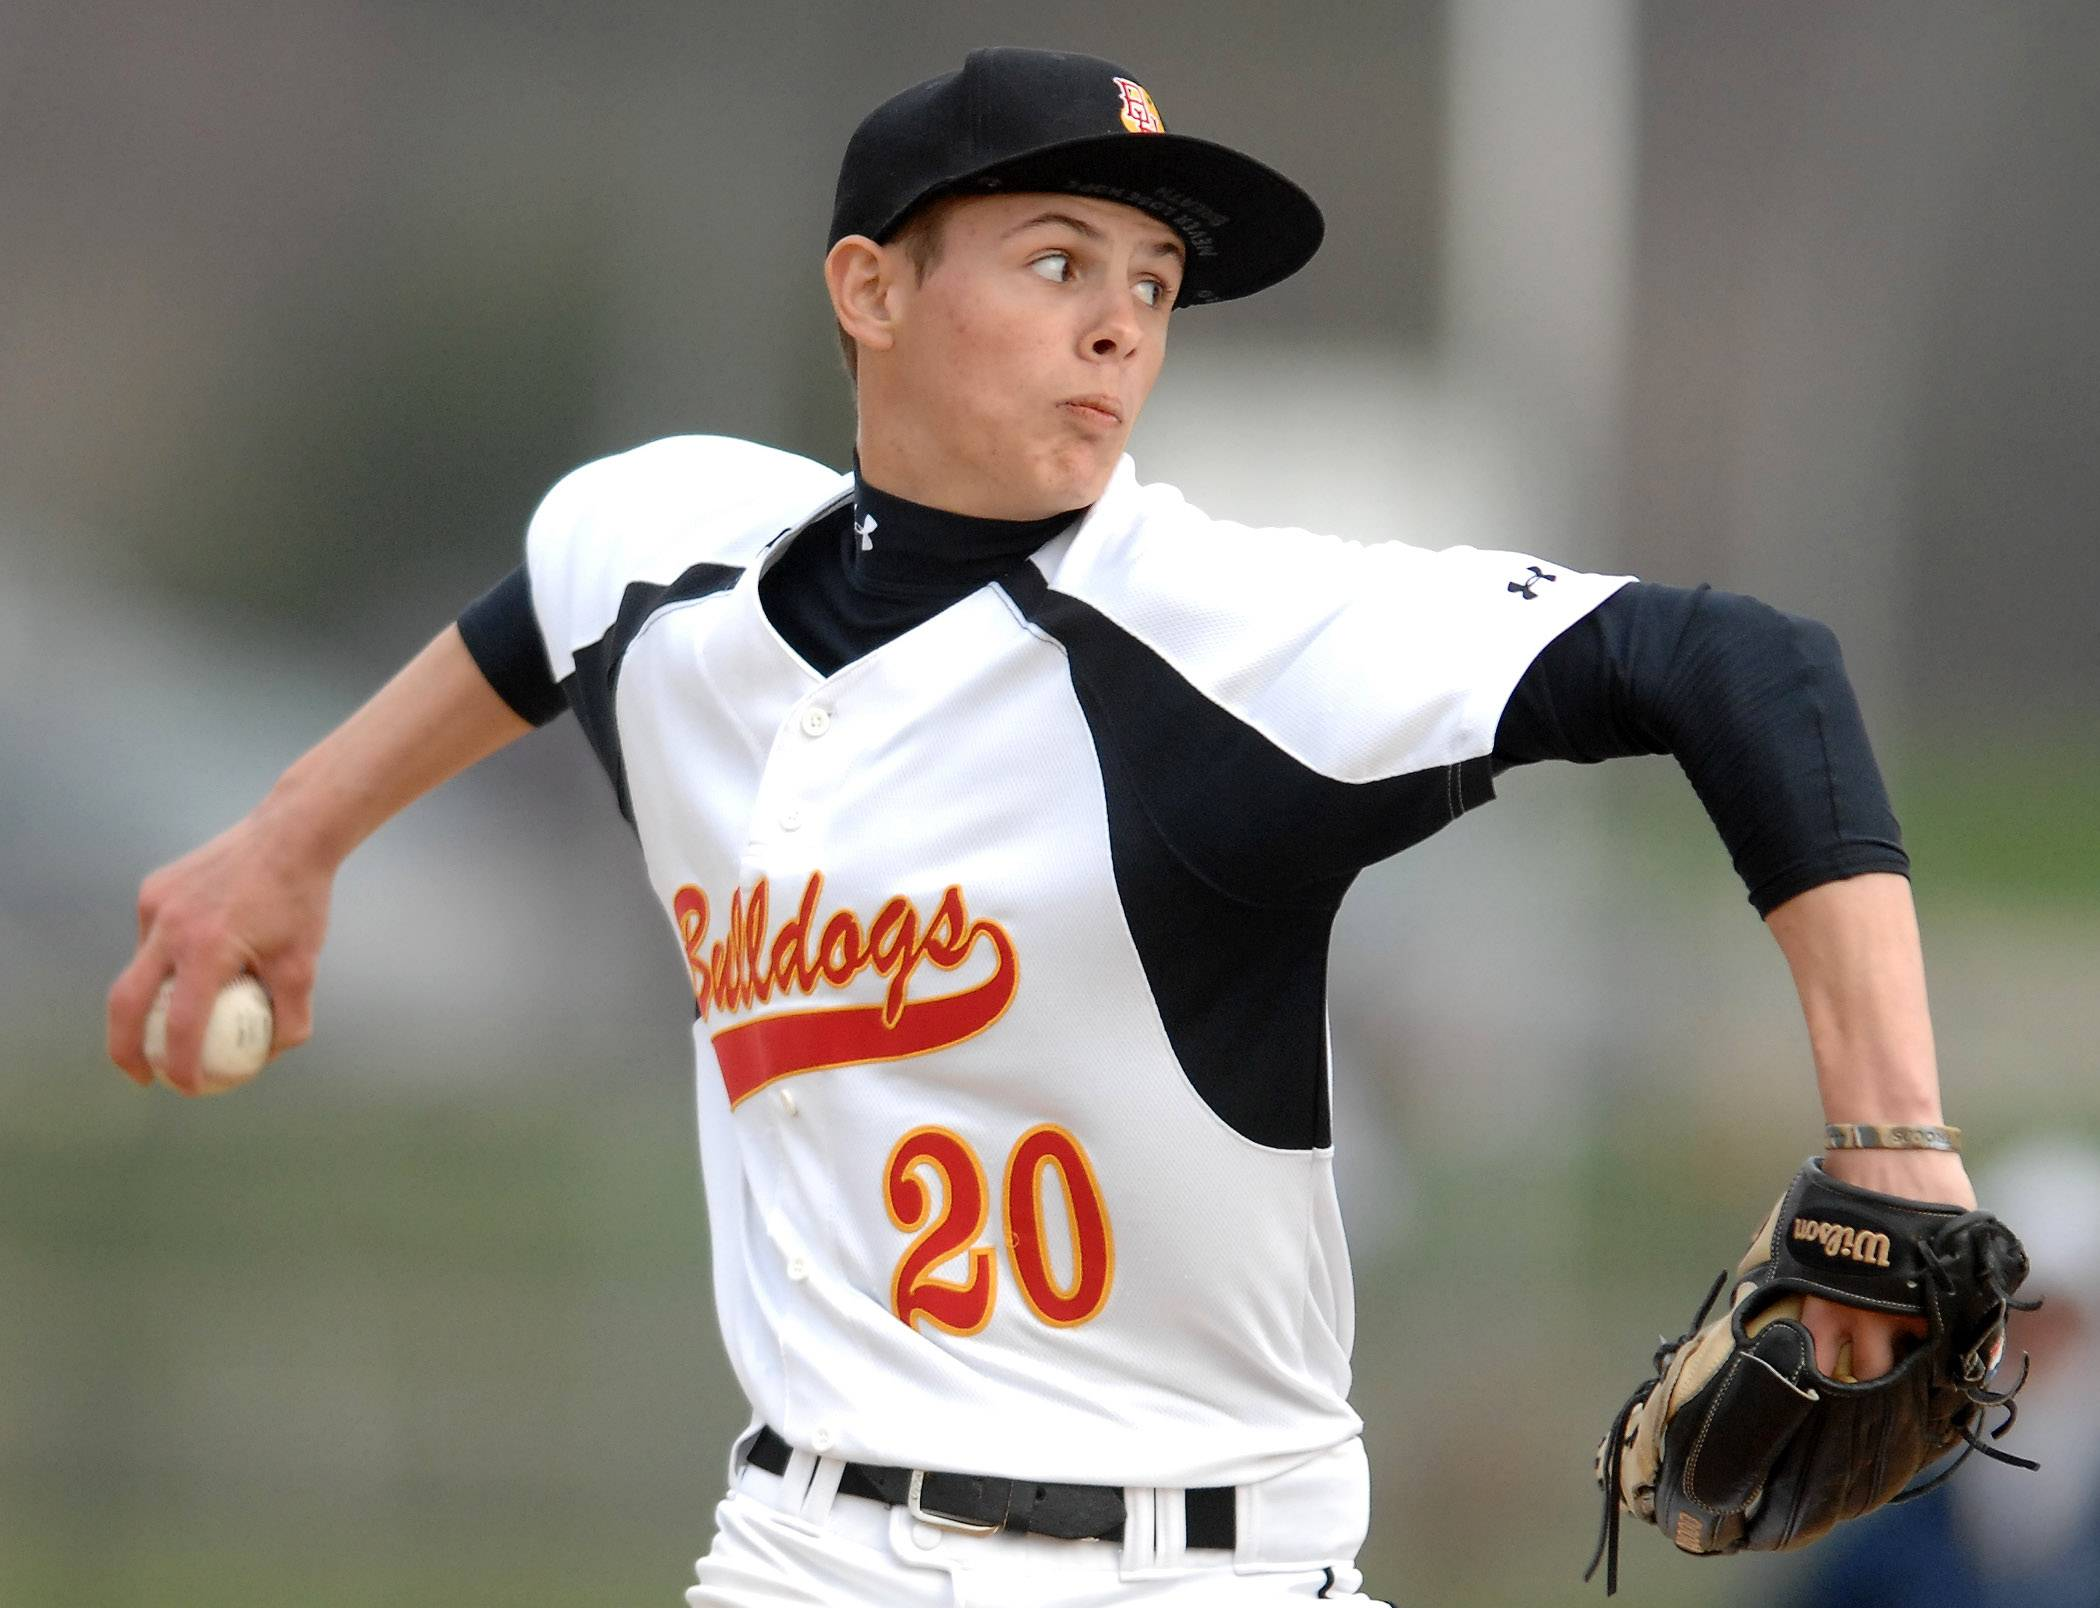 Colby Green followed up a no-hitter in his last outing by pitching Batavia to a 3-1 win over St. Charles East Thursday.